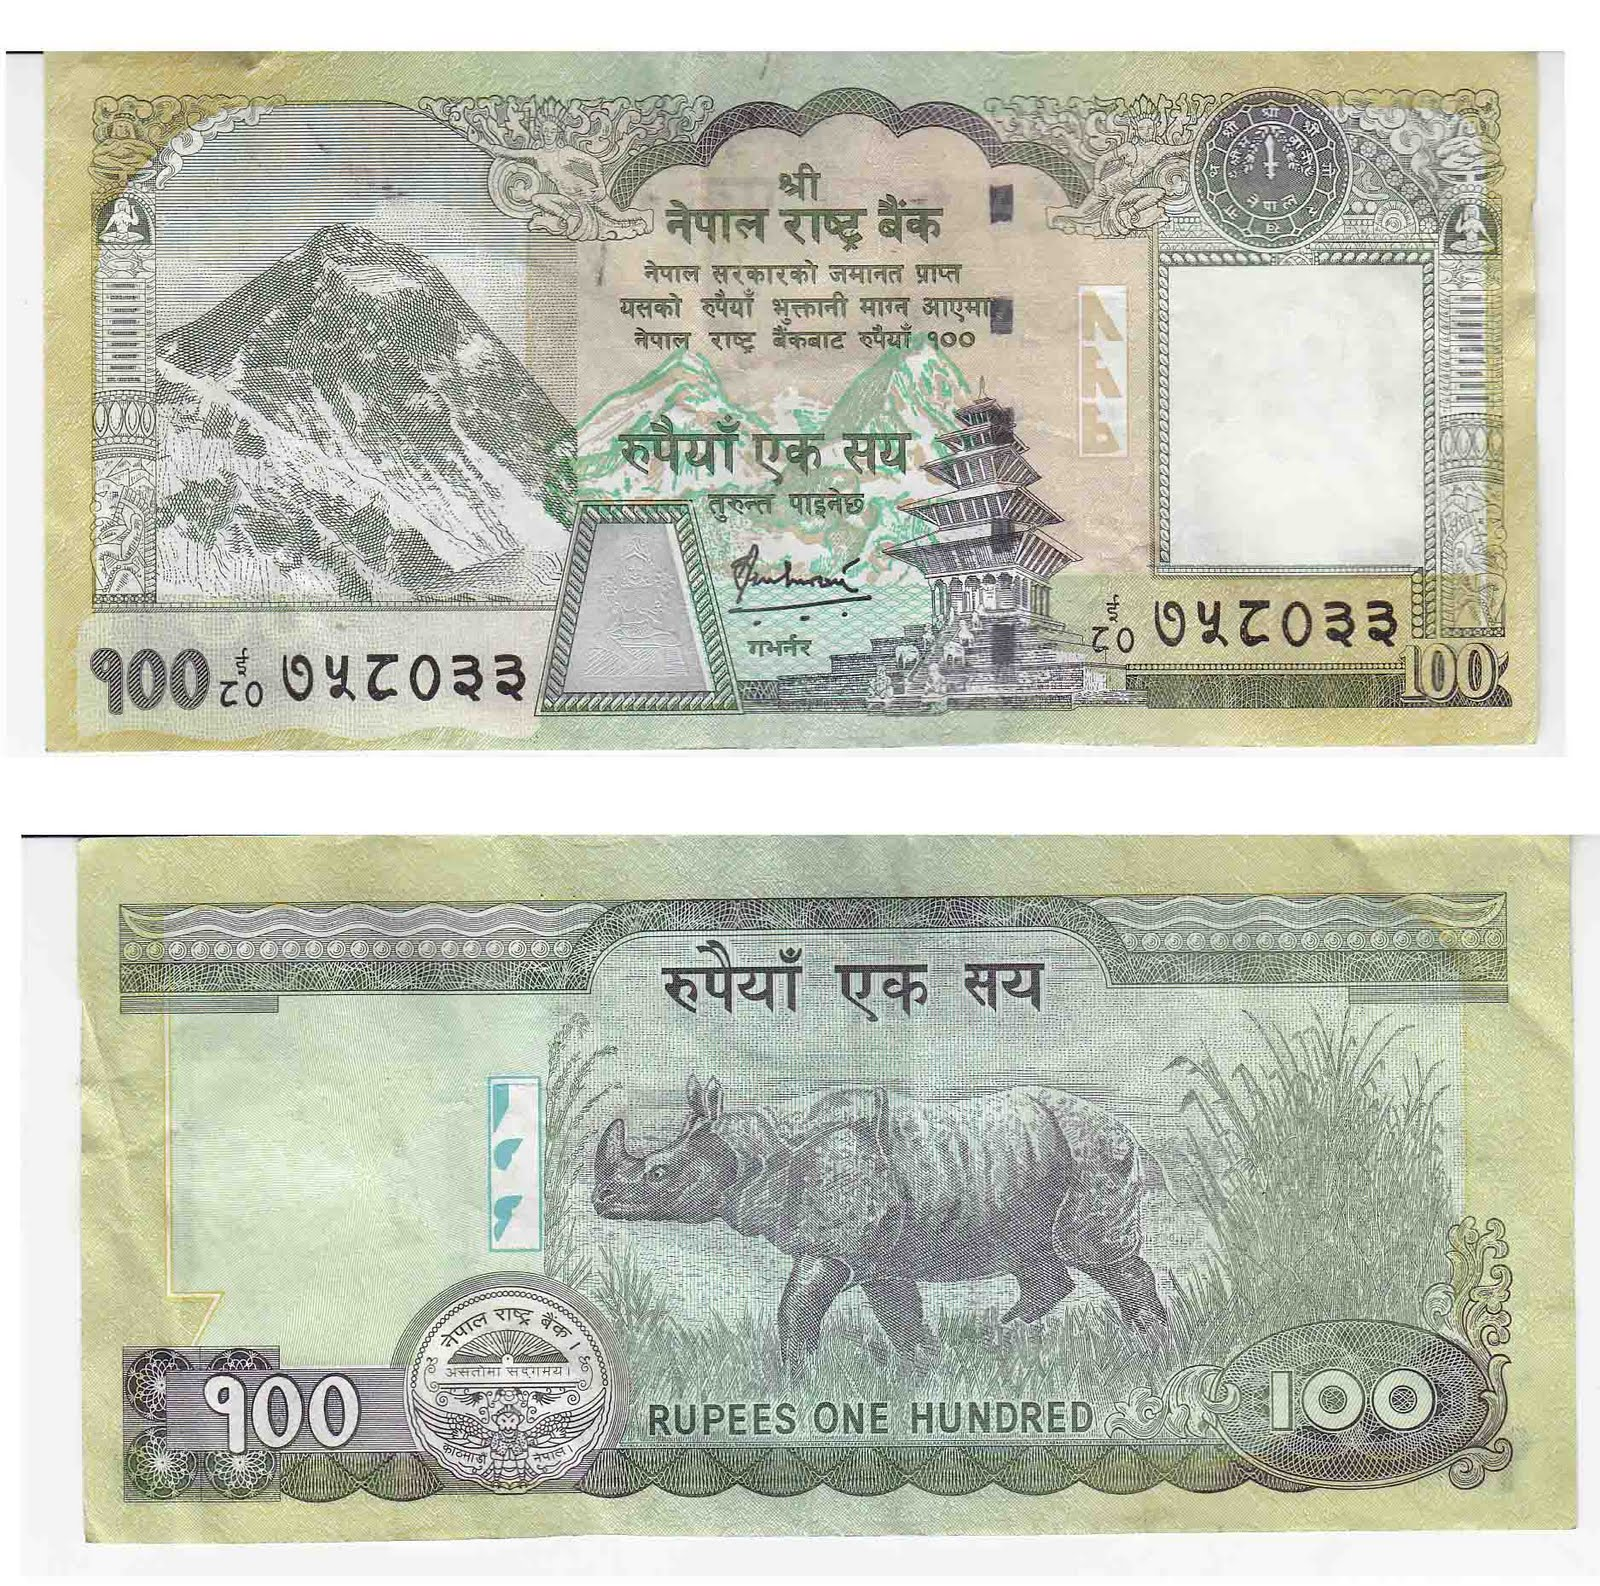 Kuwaiti Dinar To Indian Rupees, Pakistani Rupees, Bangladeshi Taka, Philippine Peso conversion Rate